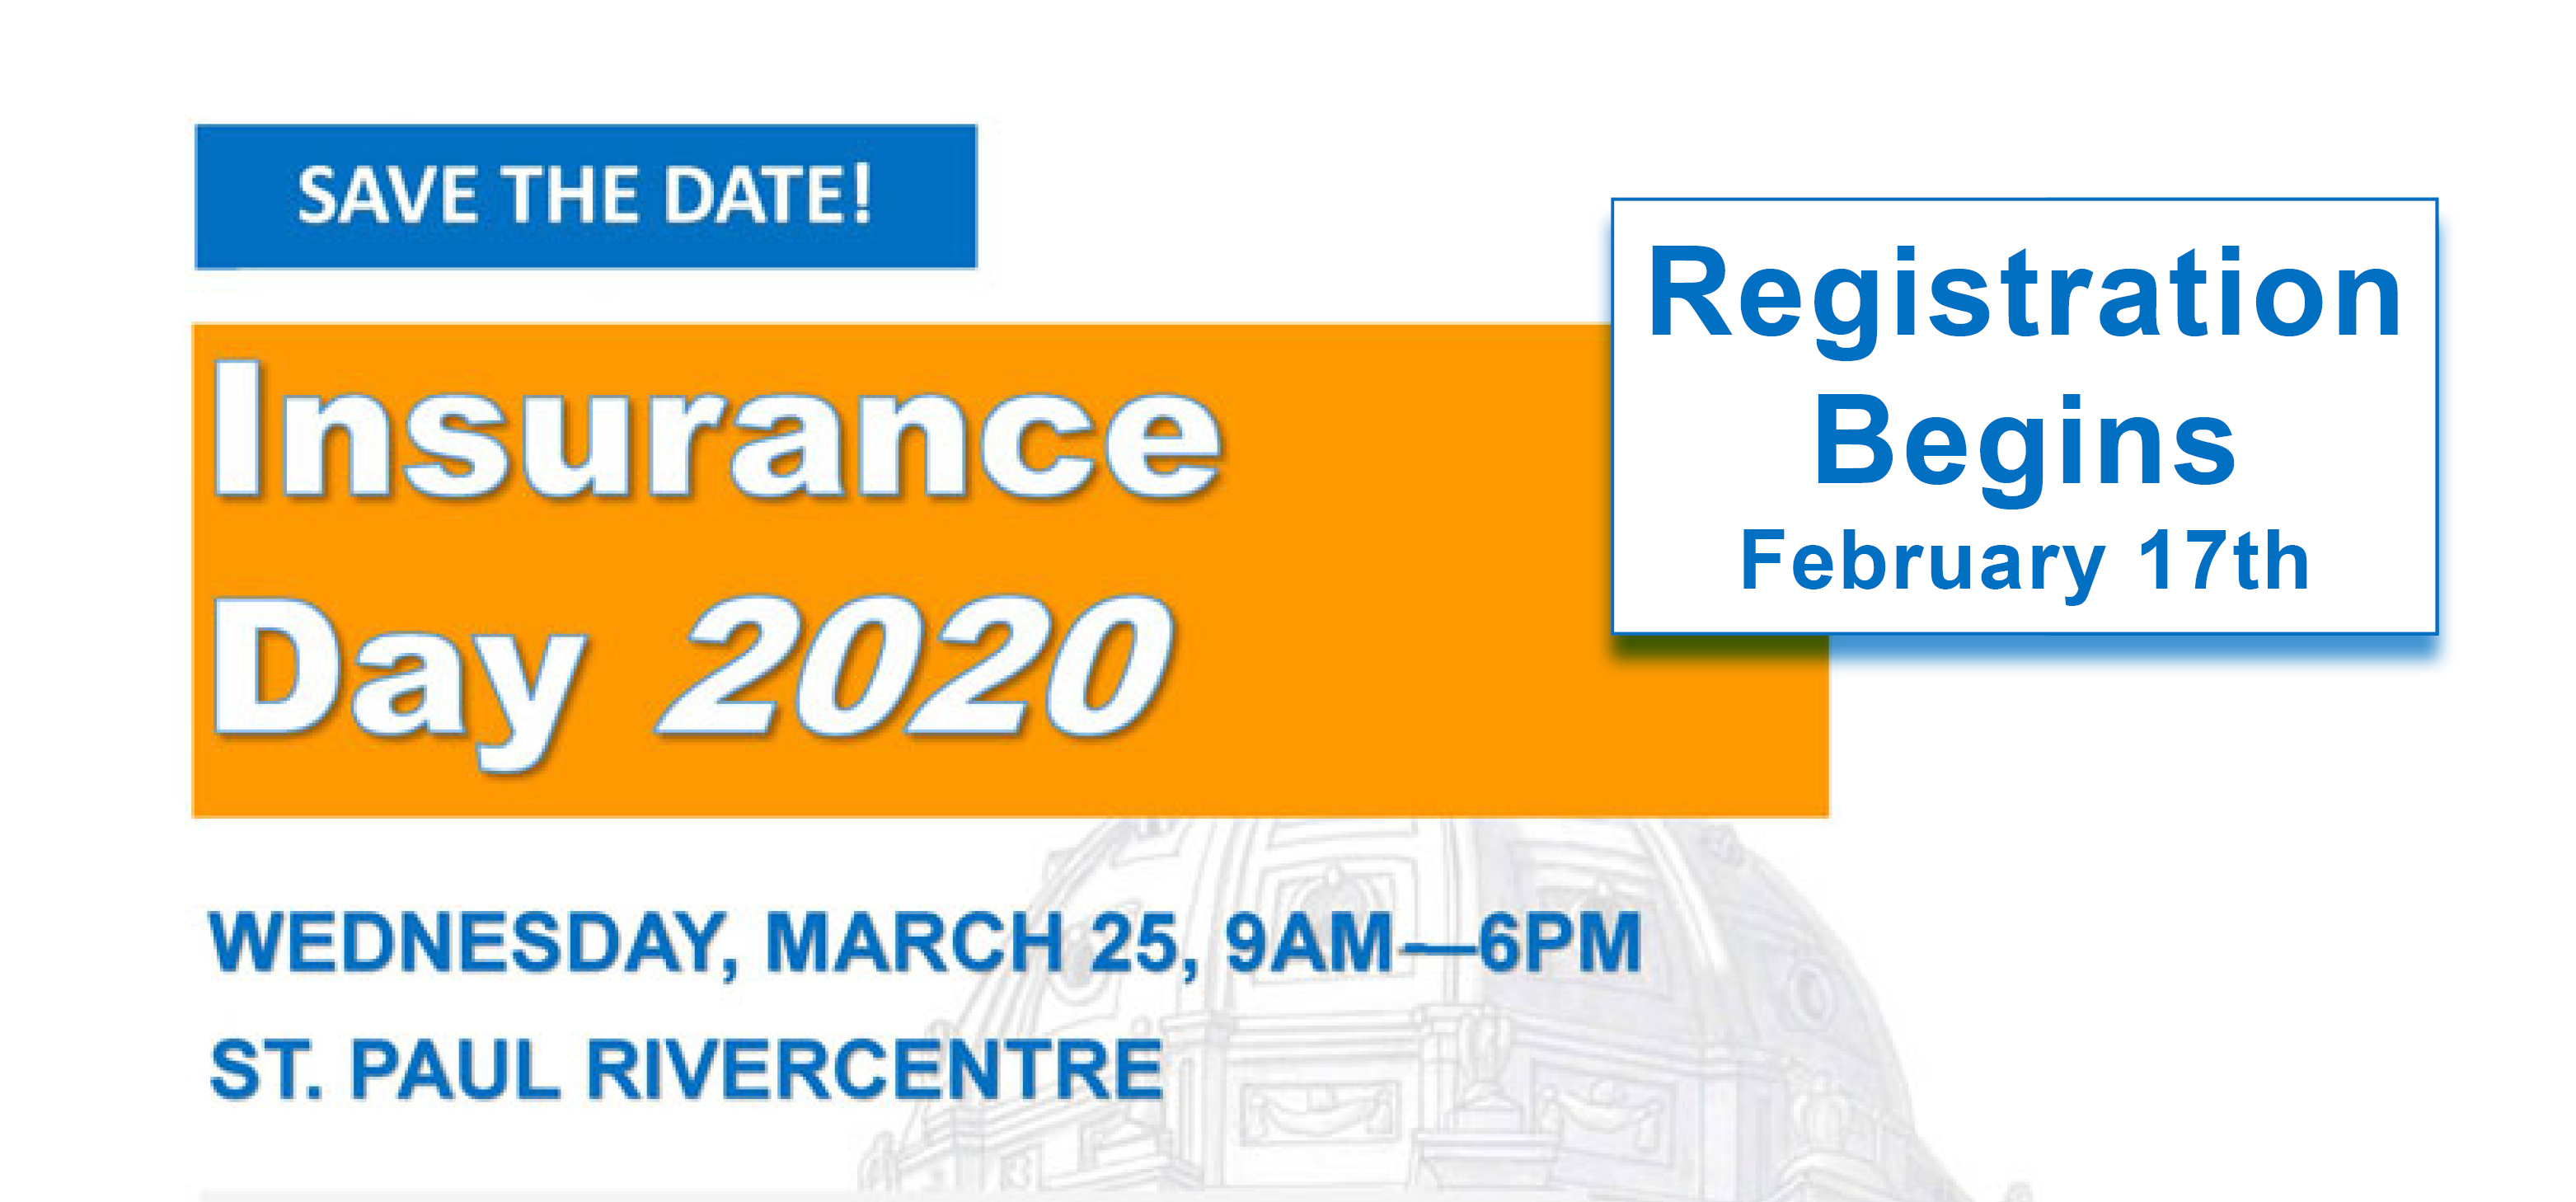 Insurance Day 2020 - Save the Date!